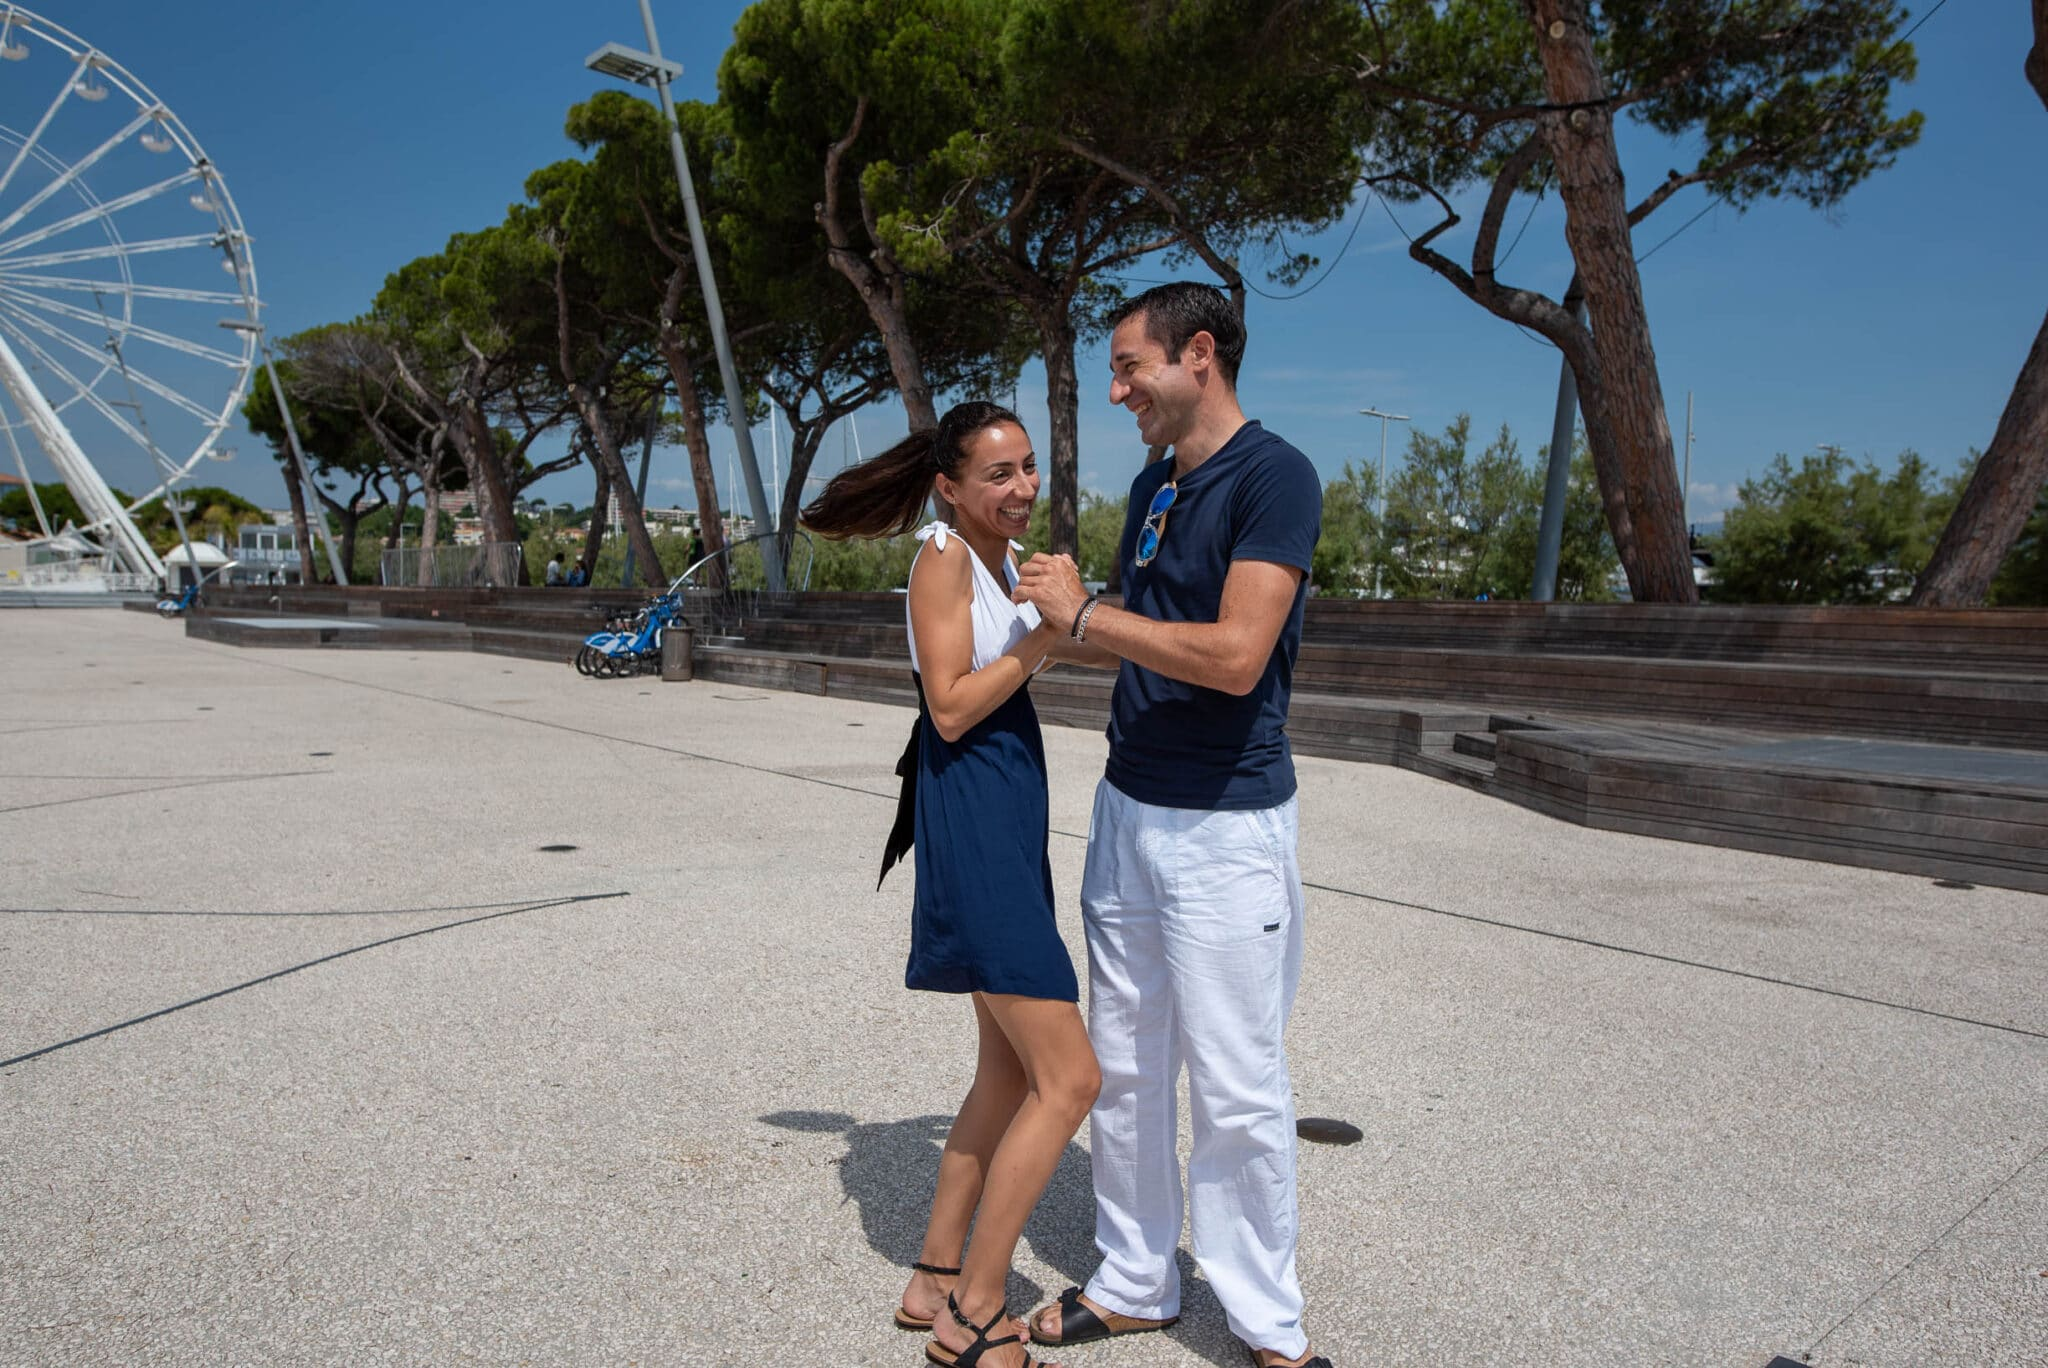 First dance rehearsal in Antibes